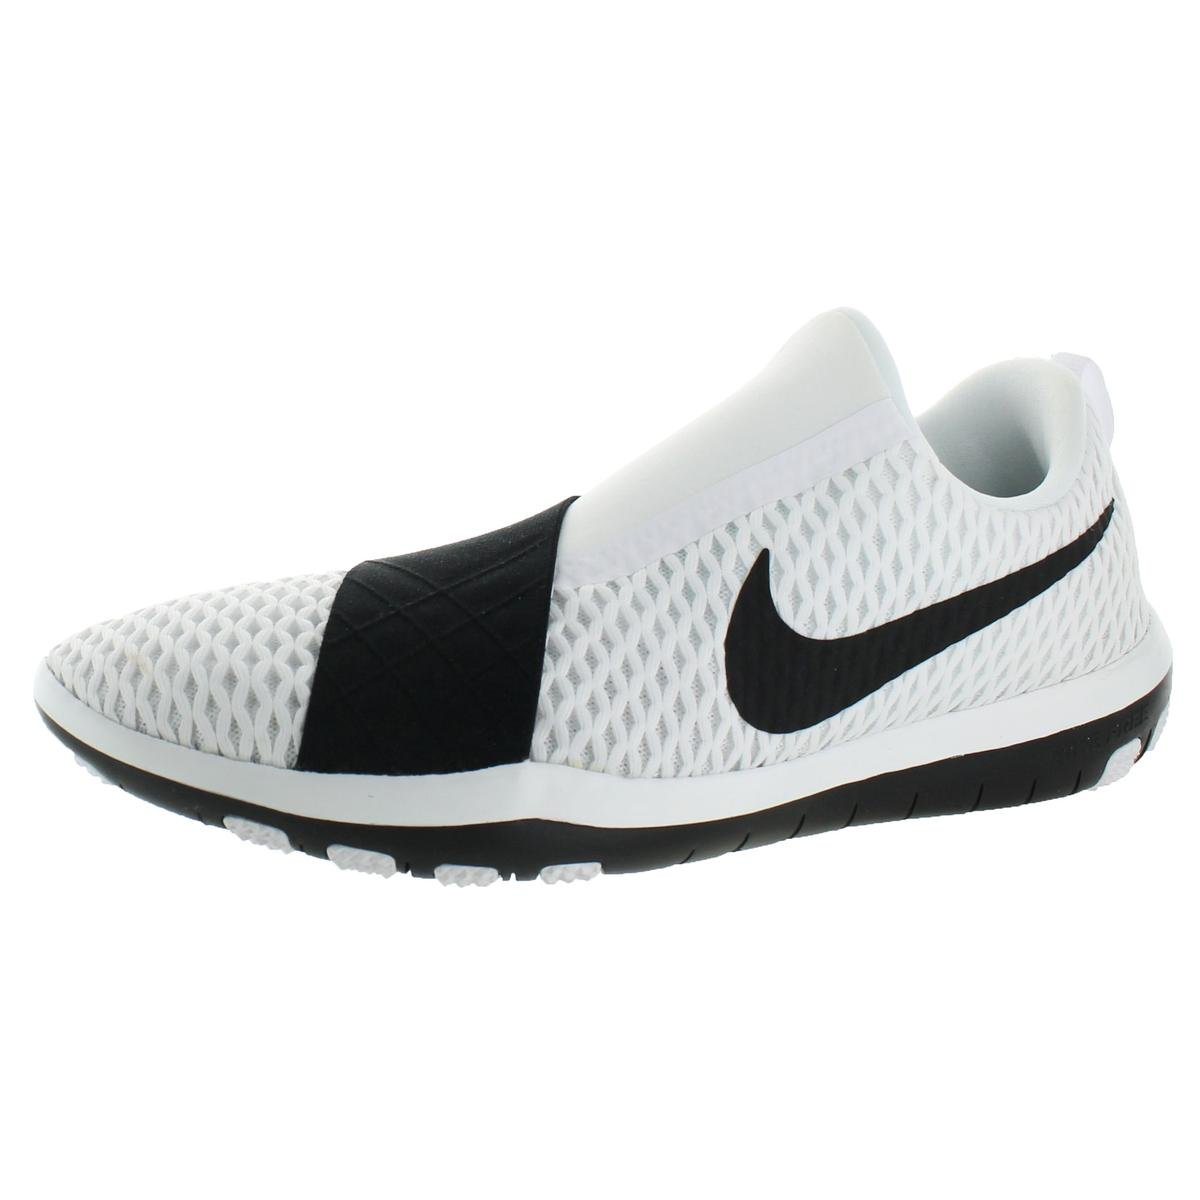 7b5b6beff3c6f Galleon - NIKE Womens Free Connect Training Mesh Trainers White 12 Medium  (B